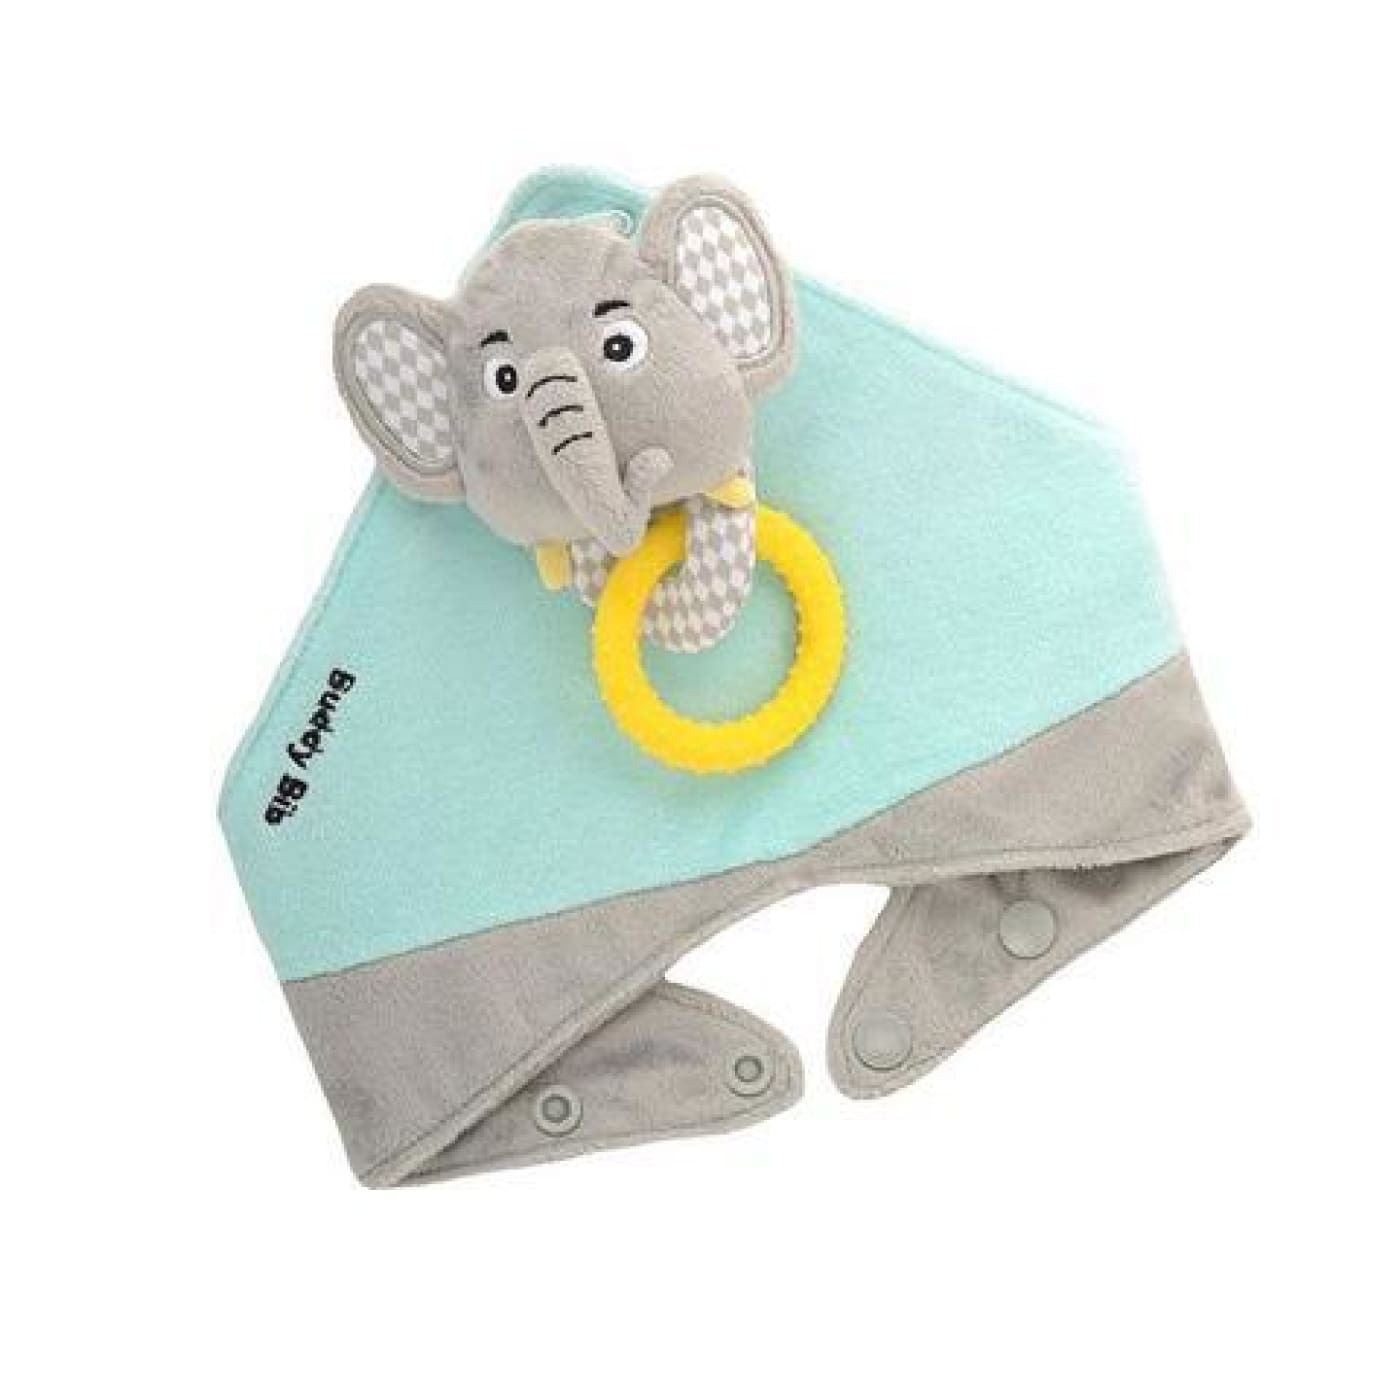 Malarkey Kids Buddy Bib - Elephant - NURSING & FEEDING - BIBS/BURP CLOTHS